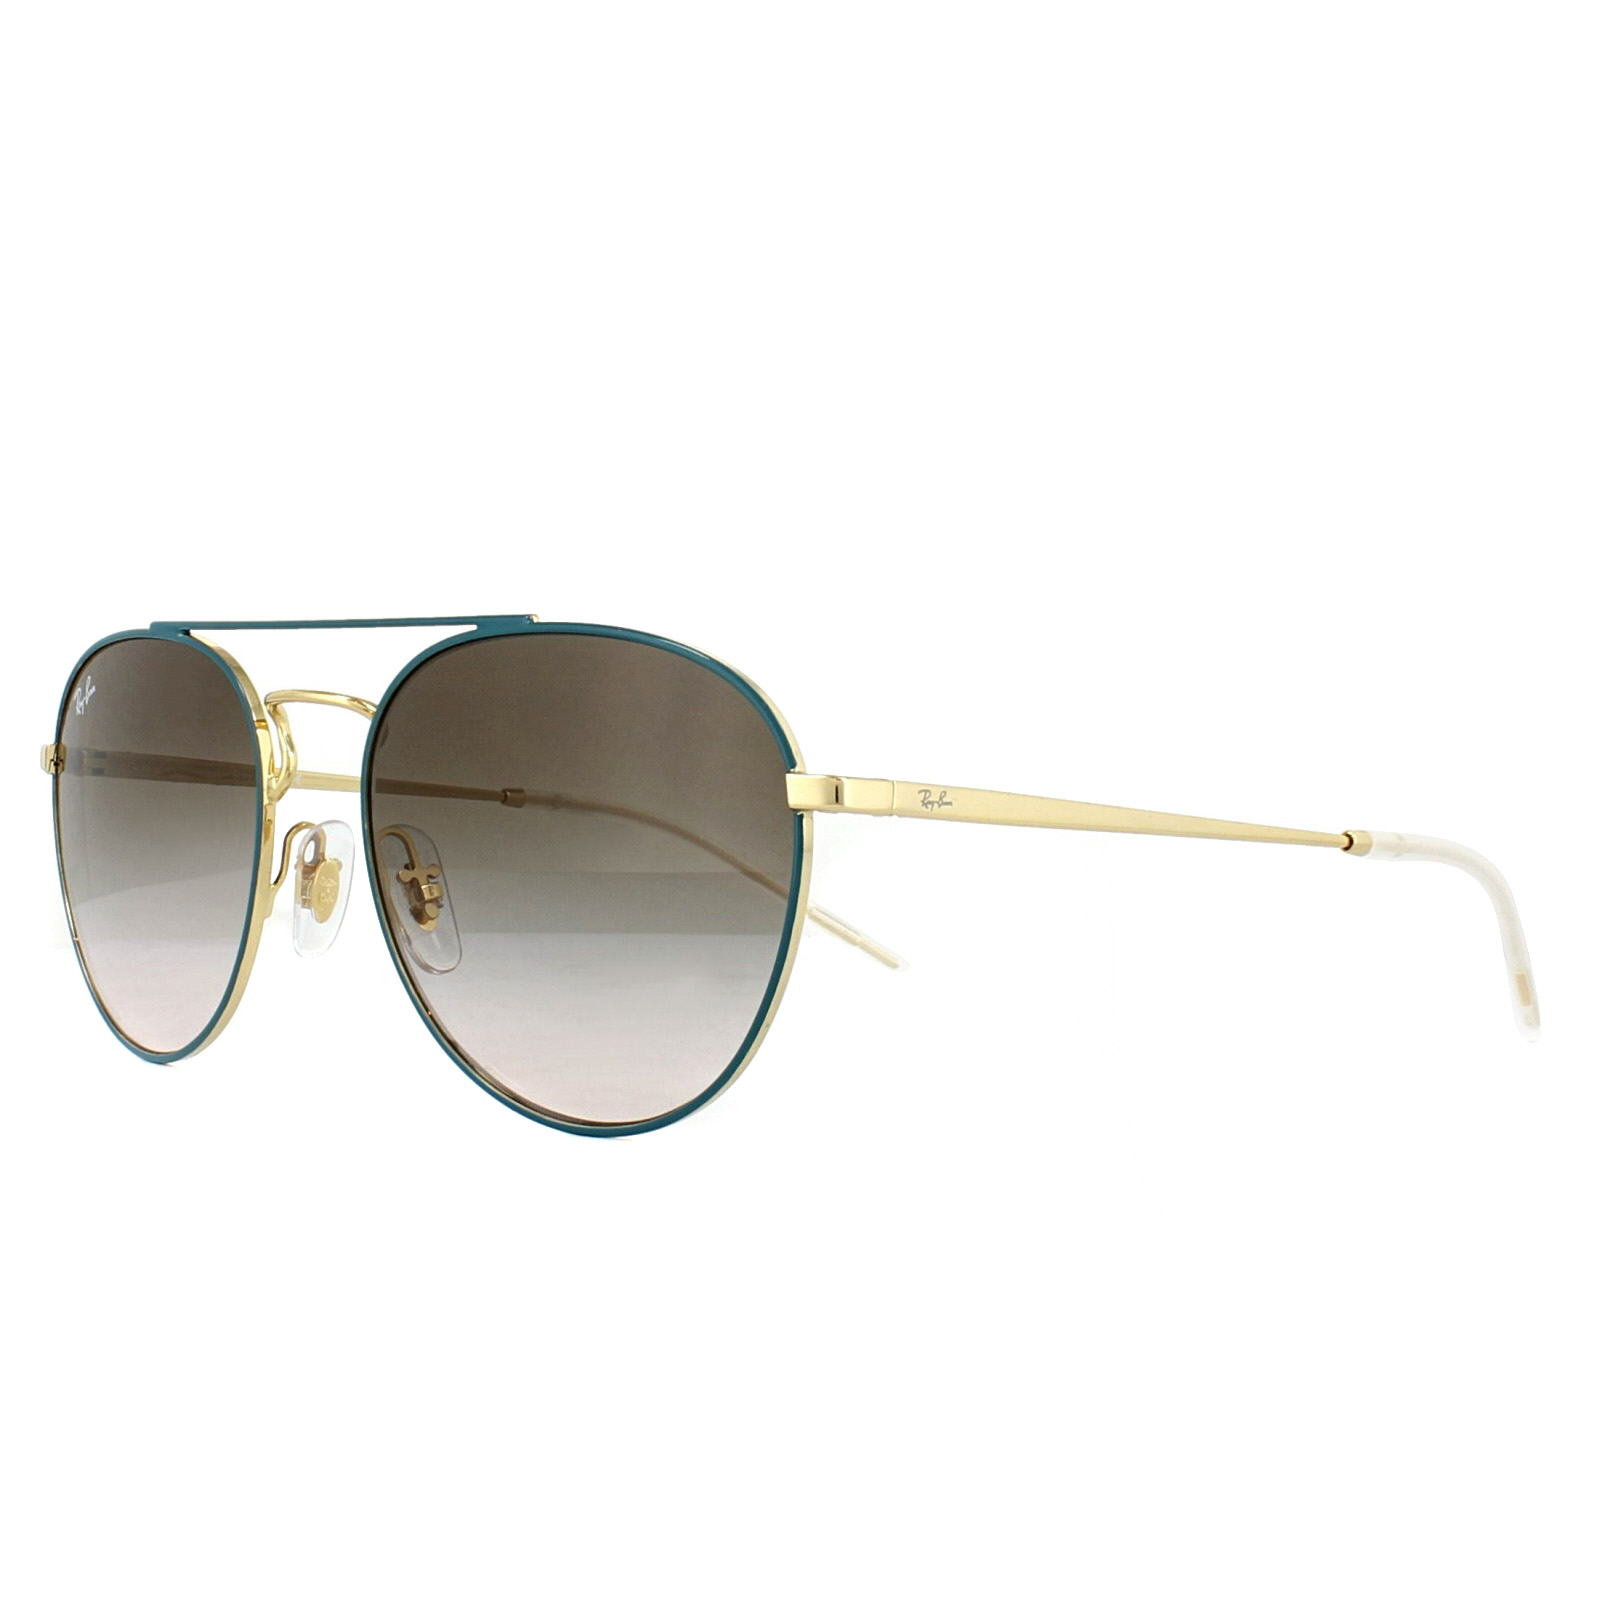 ca7a4770938 Sentinel Ray-Ban Sunglasses 3589 905613 Green Gold Brown Gradient